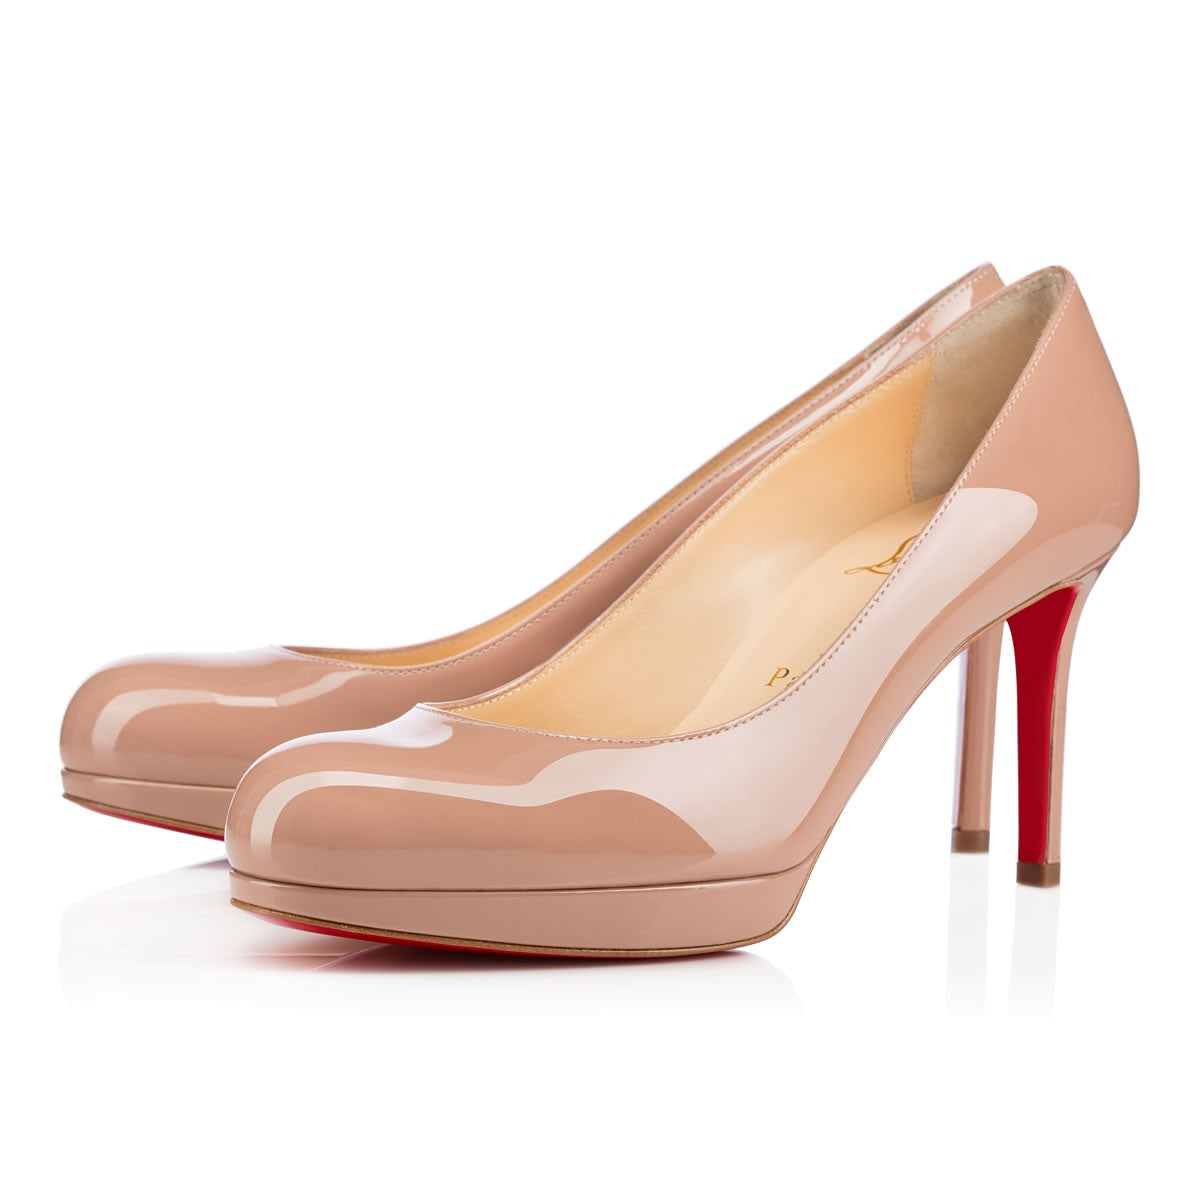 b020c81ef0ff Christian Louboutin Nude New Simple Pump 36 - Love Luxe